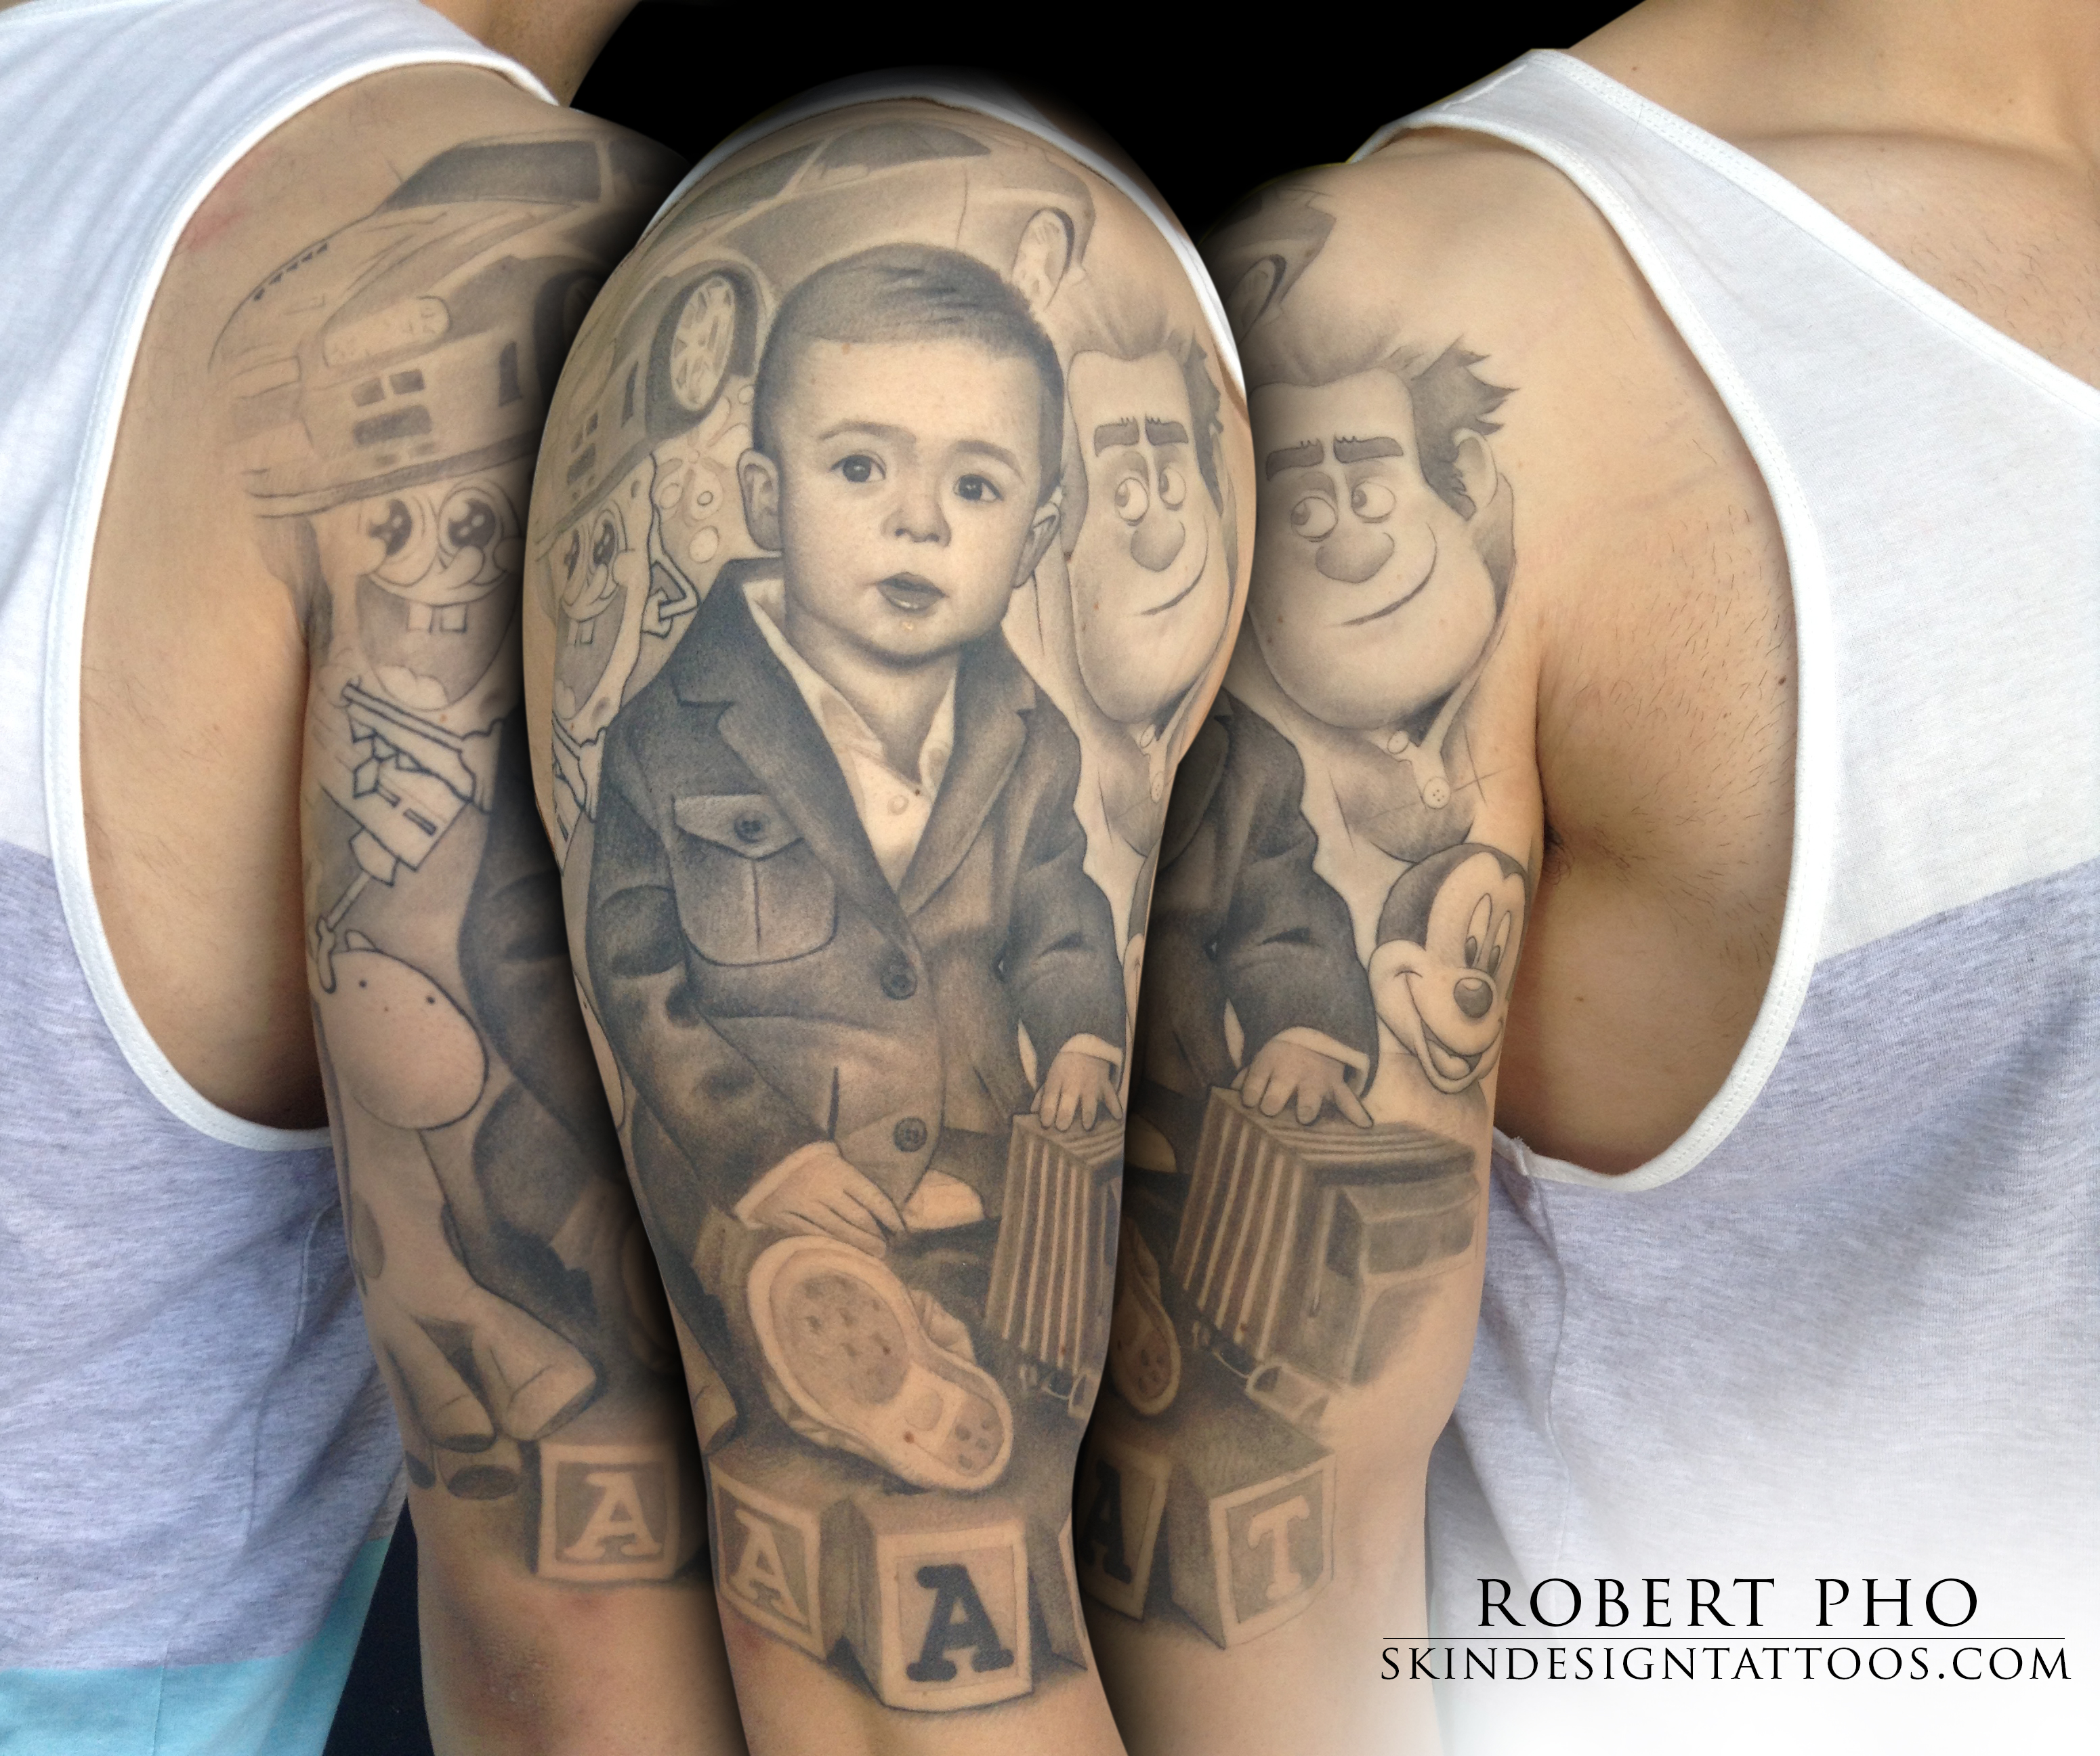 Awesome 3d baby portrait tattoo on man left half sleeve by robert pho